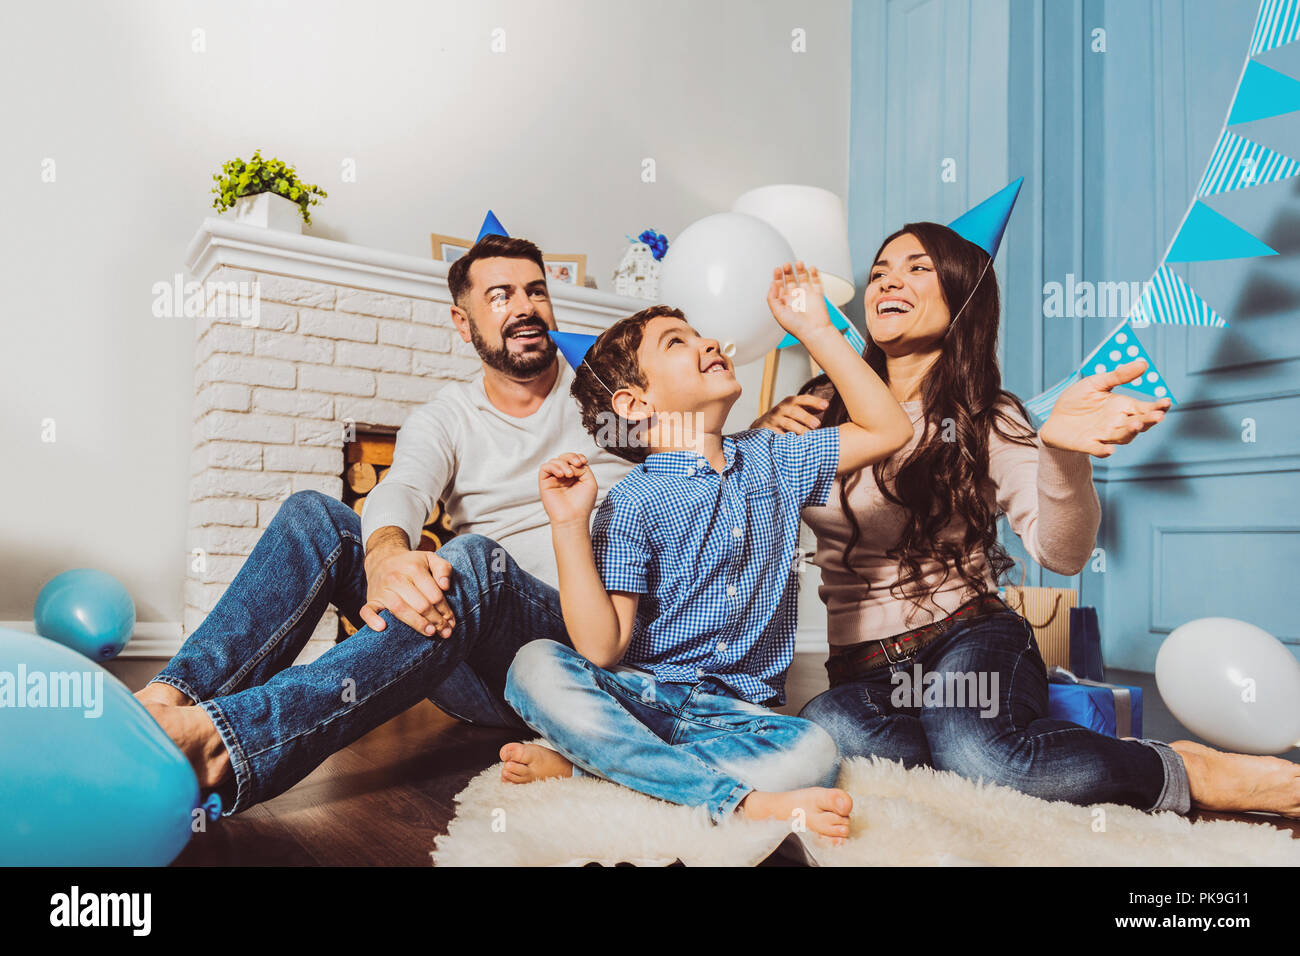 Cheerful sweet family spending birthday party - Stock Image